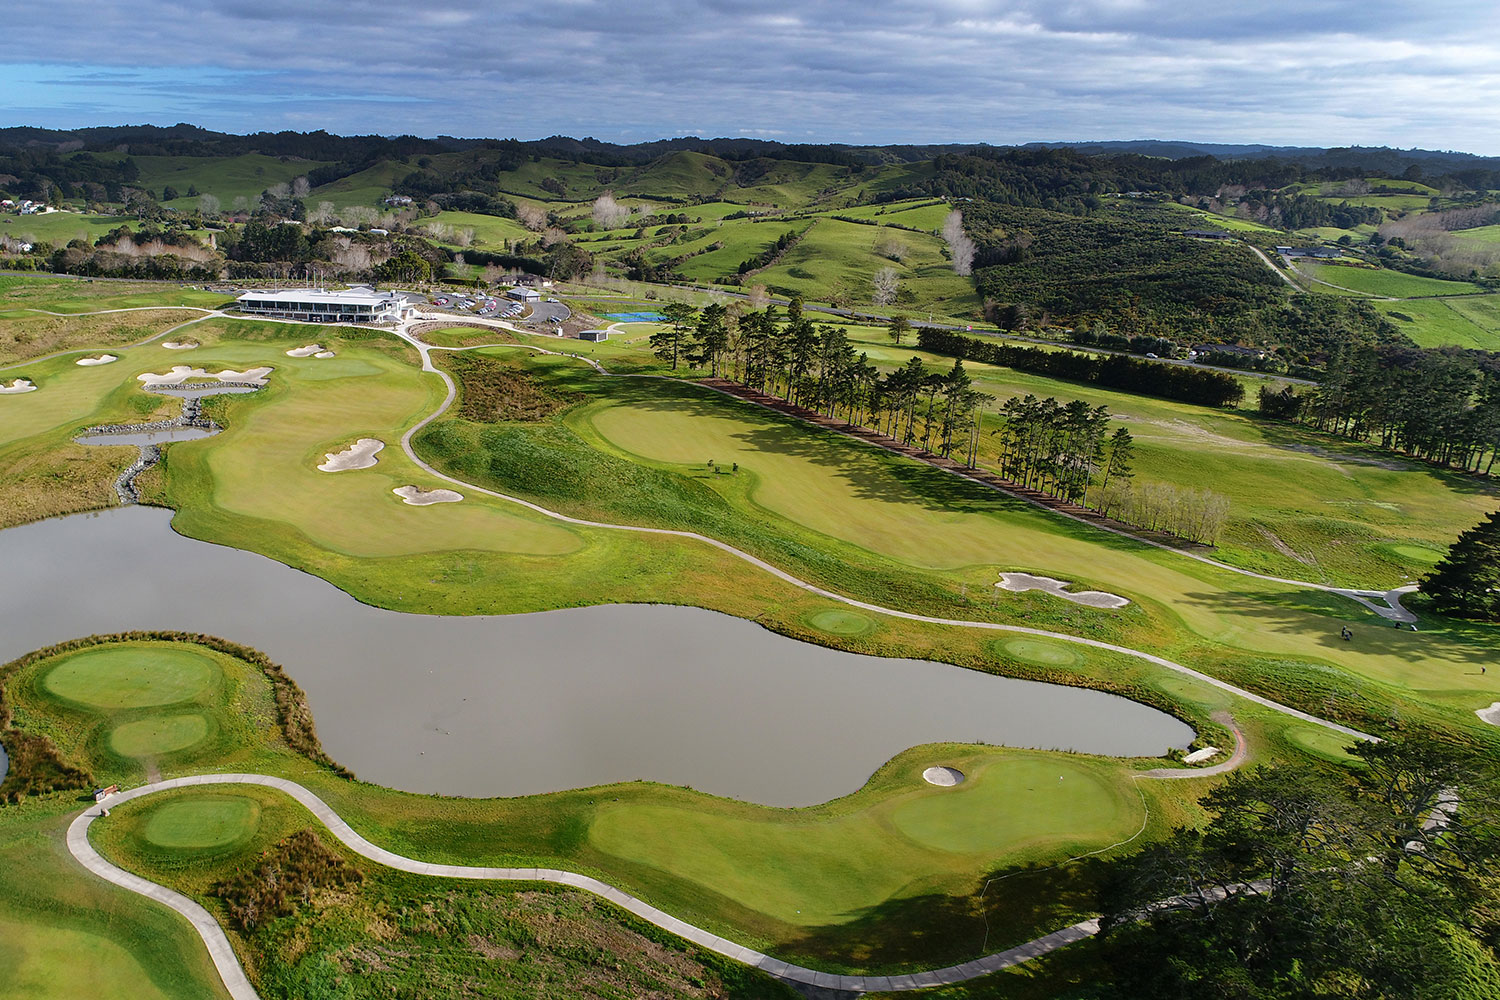 Wainui Golf Club